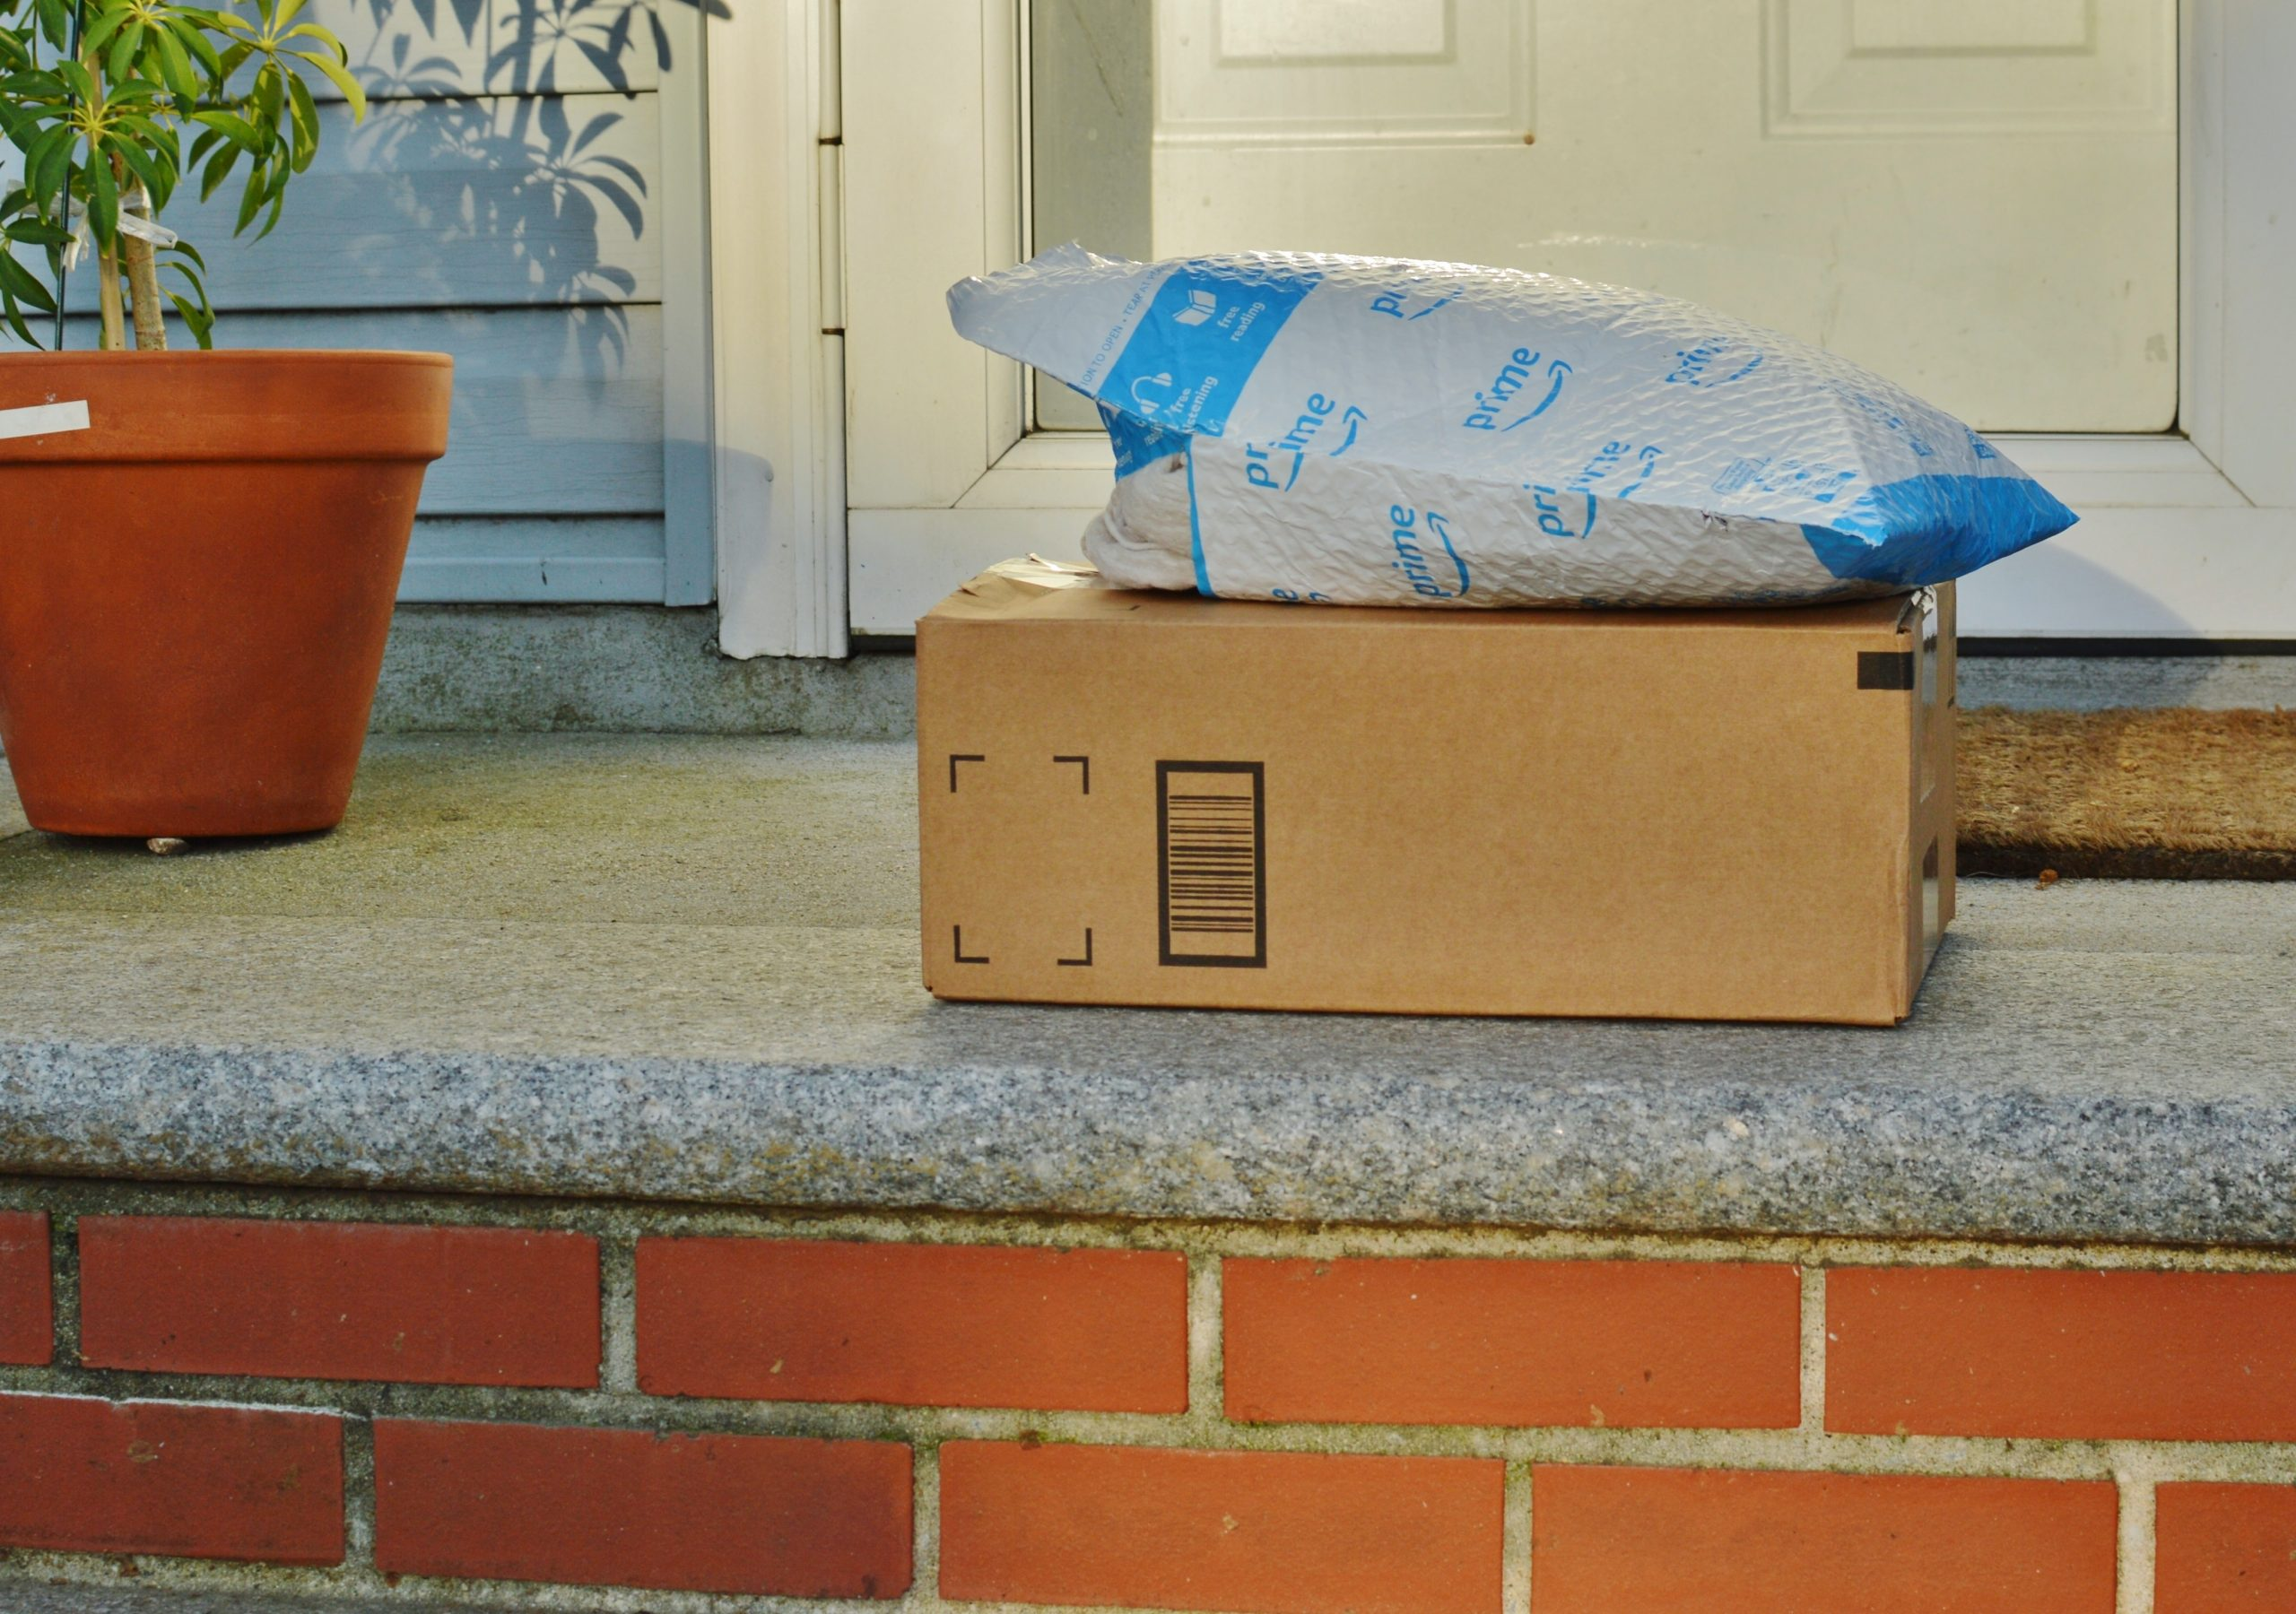 Amazon packages sitting on front step